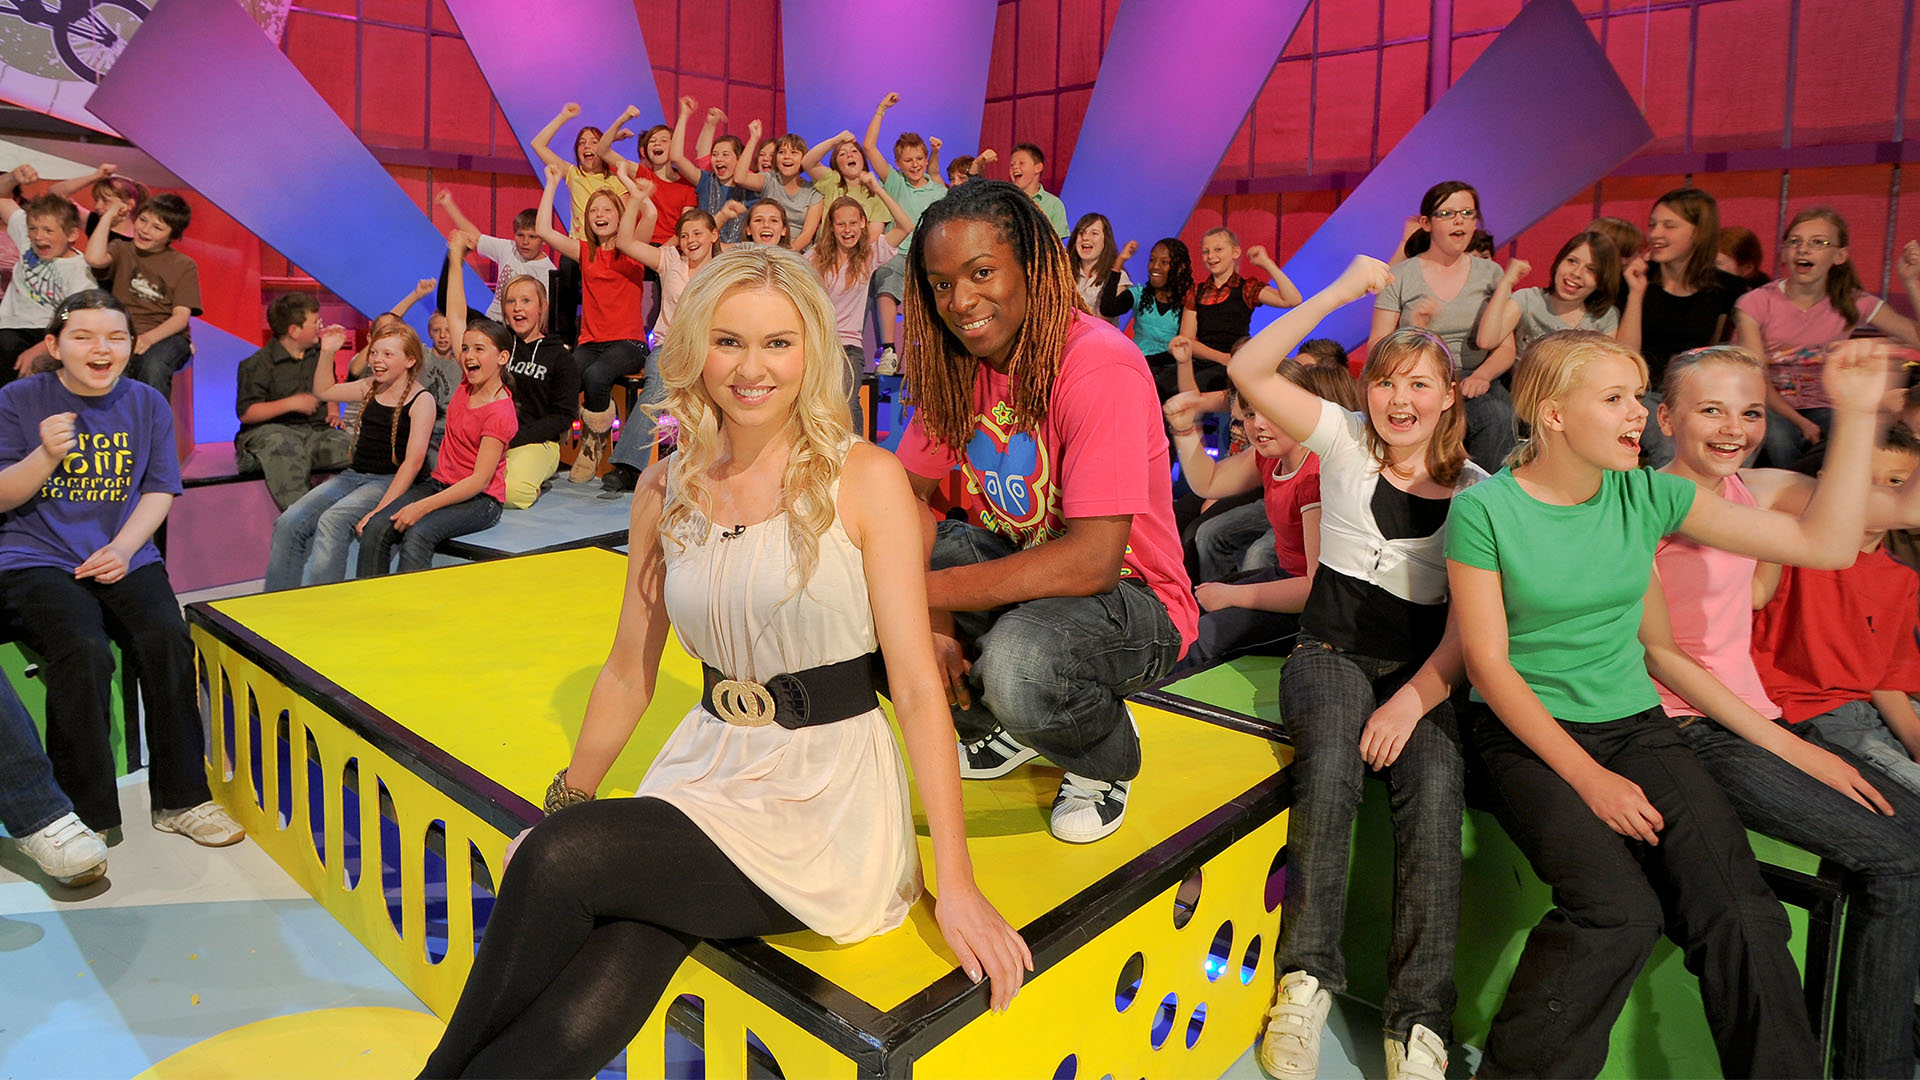 On set at Citv's Skillicious - production still with presenters Nigel Clarke and Zoe Salmon and studio audience